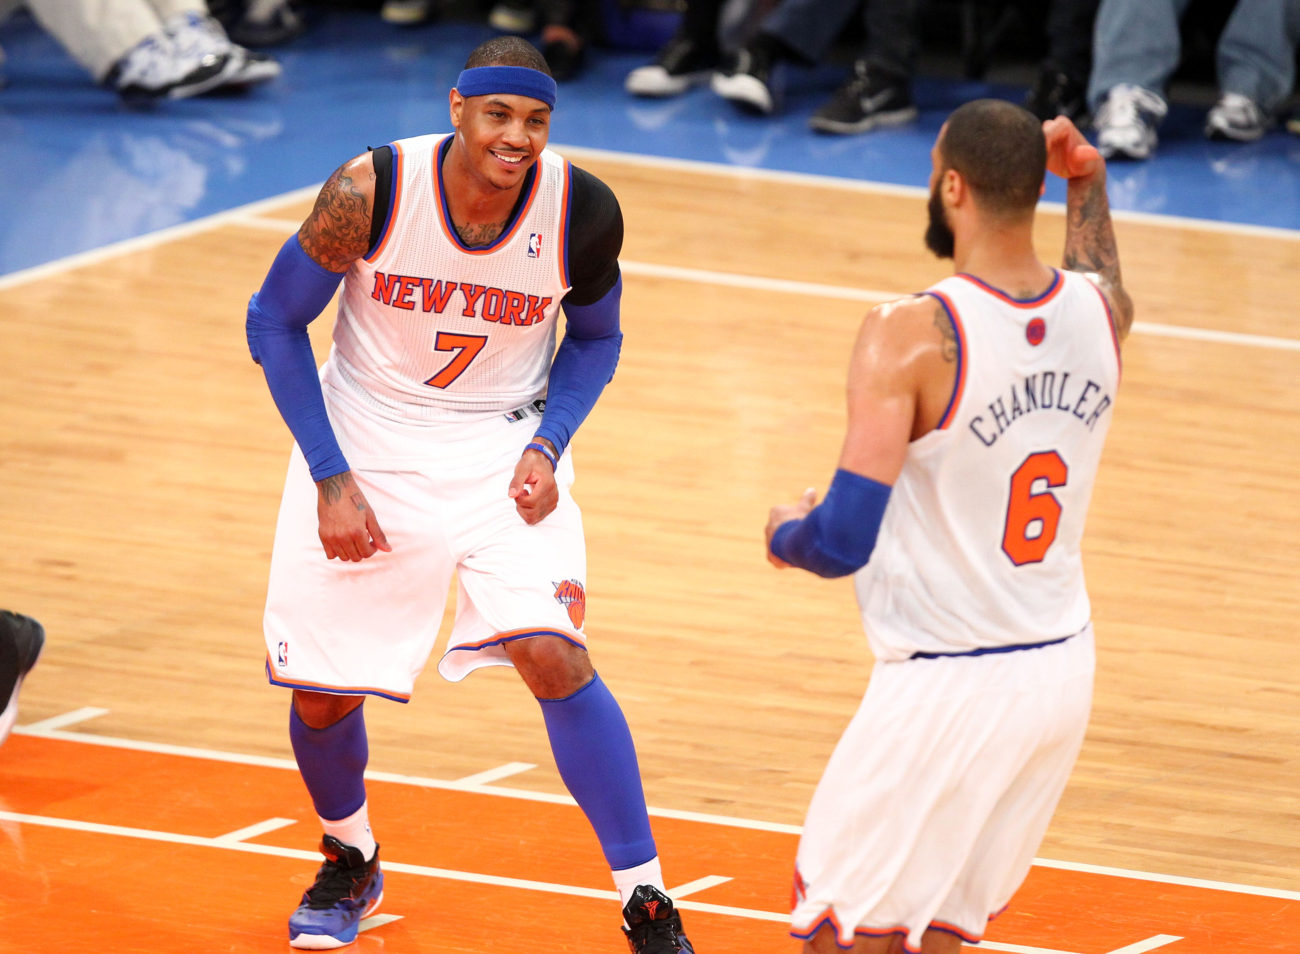 May 5, 2013; New York, NY, USA; New York Knicks forward Carmelo Anthony (7) reacts after hitting a shot against the Indiana Pacers at Madison Square Garden. Mandatory Credit: Danny Wild-USA TODAY Sports